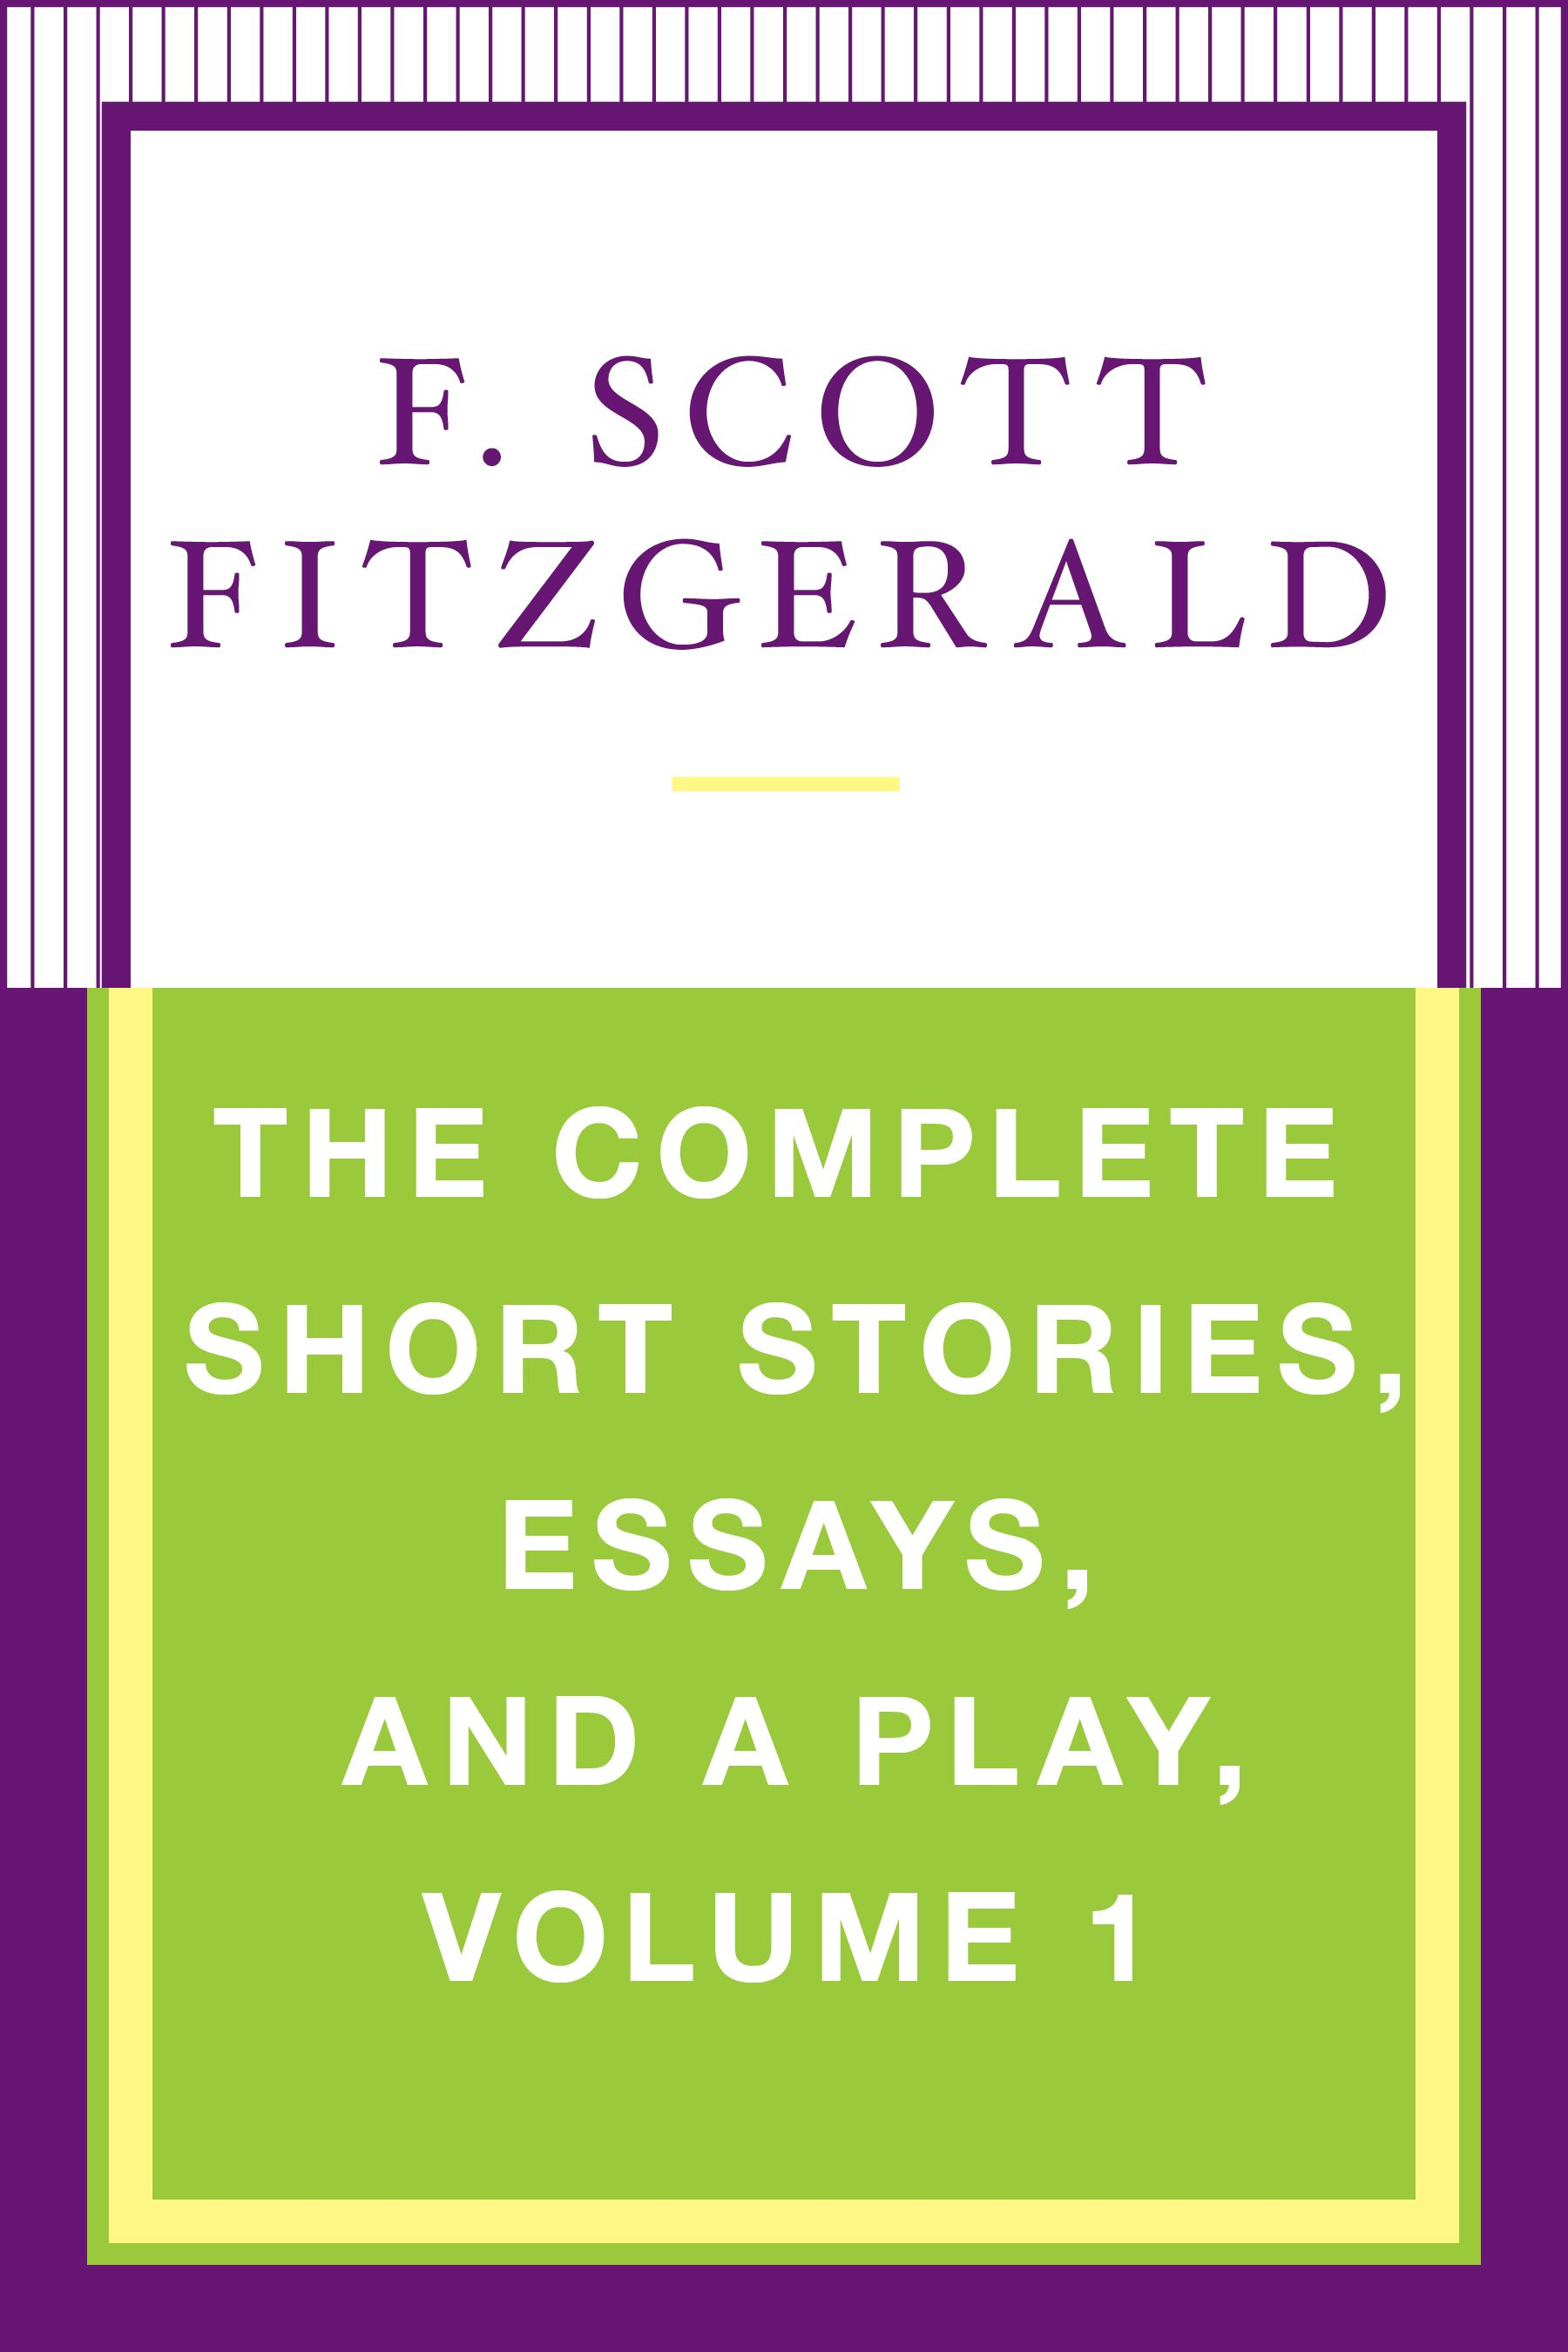 f scott fitzgerald official publisher page simon schuster uk book cover image jpg the complete short stories essays and a play volume 1